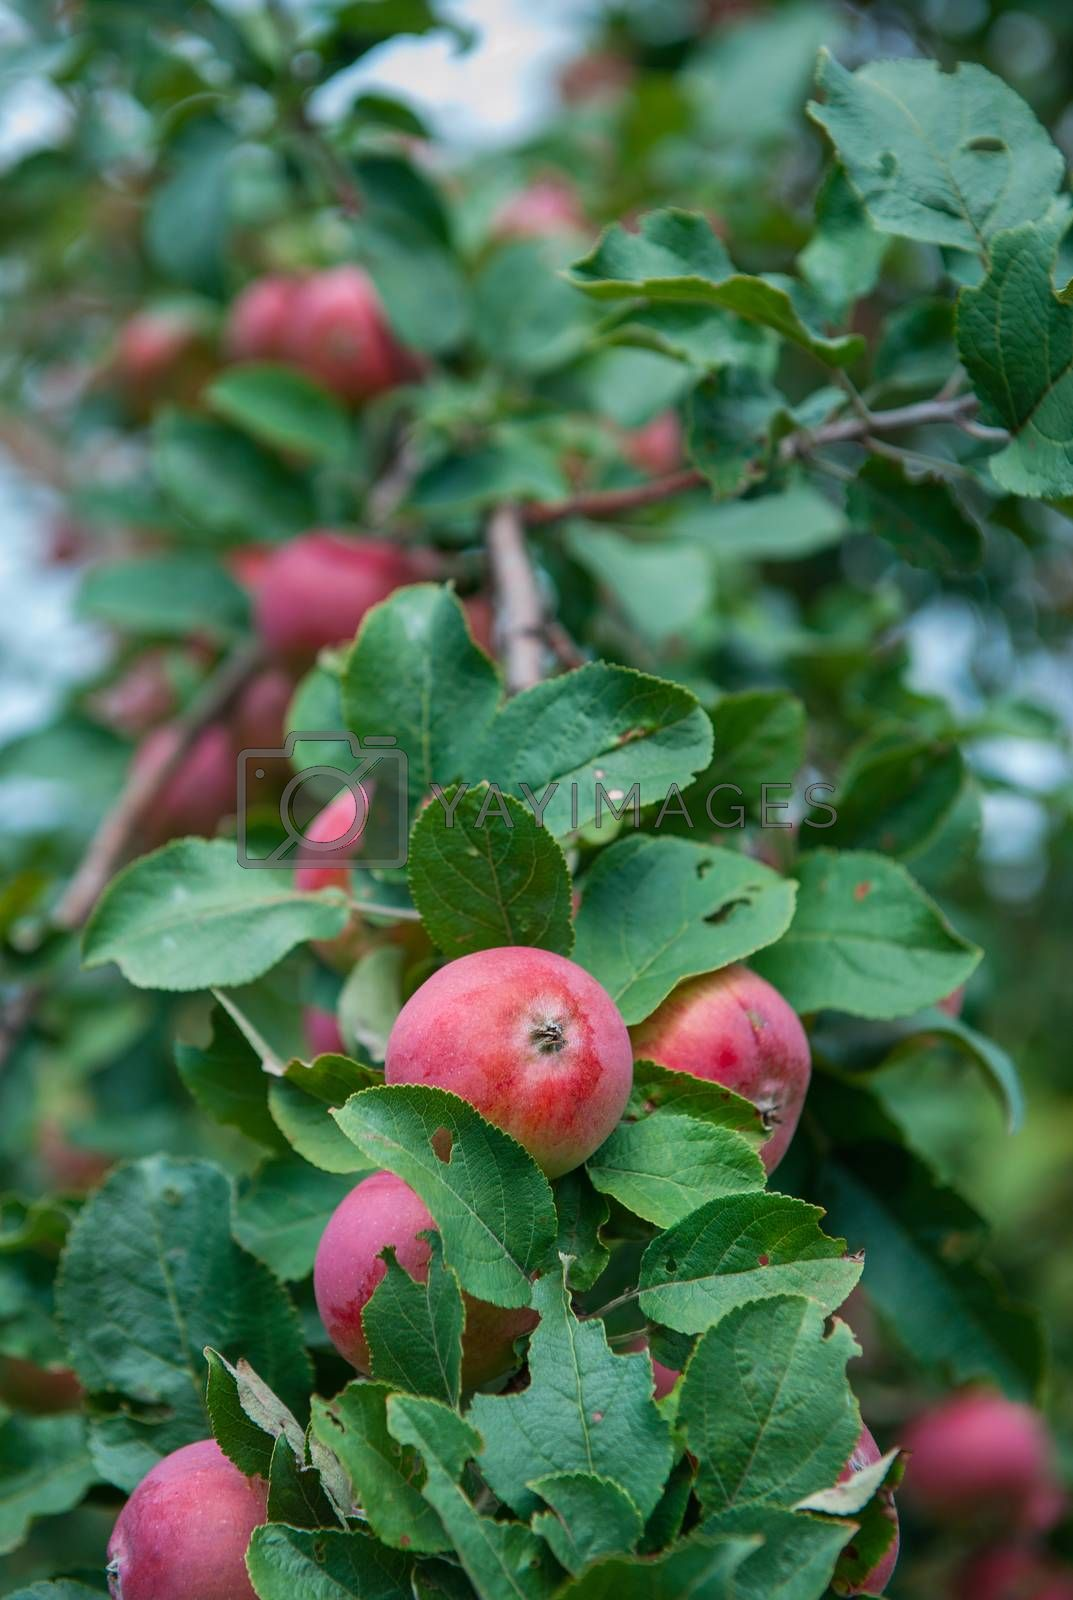 Apple tree with apples, organic natural fruits in a garden, harvest concept